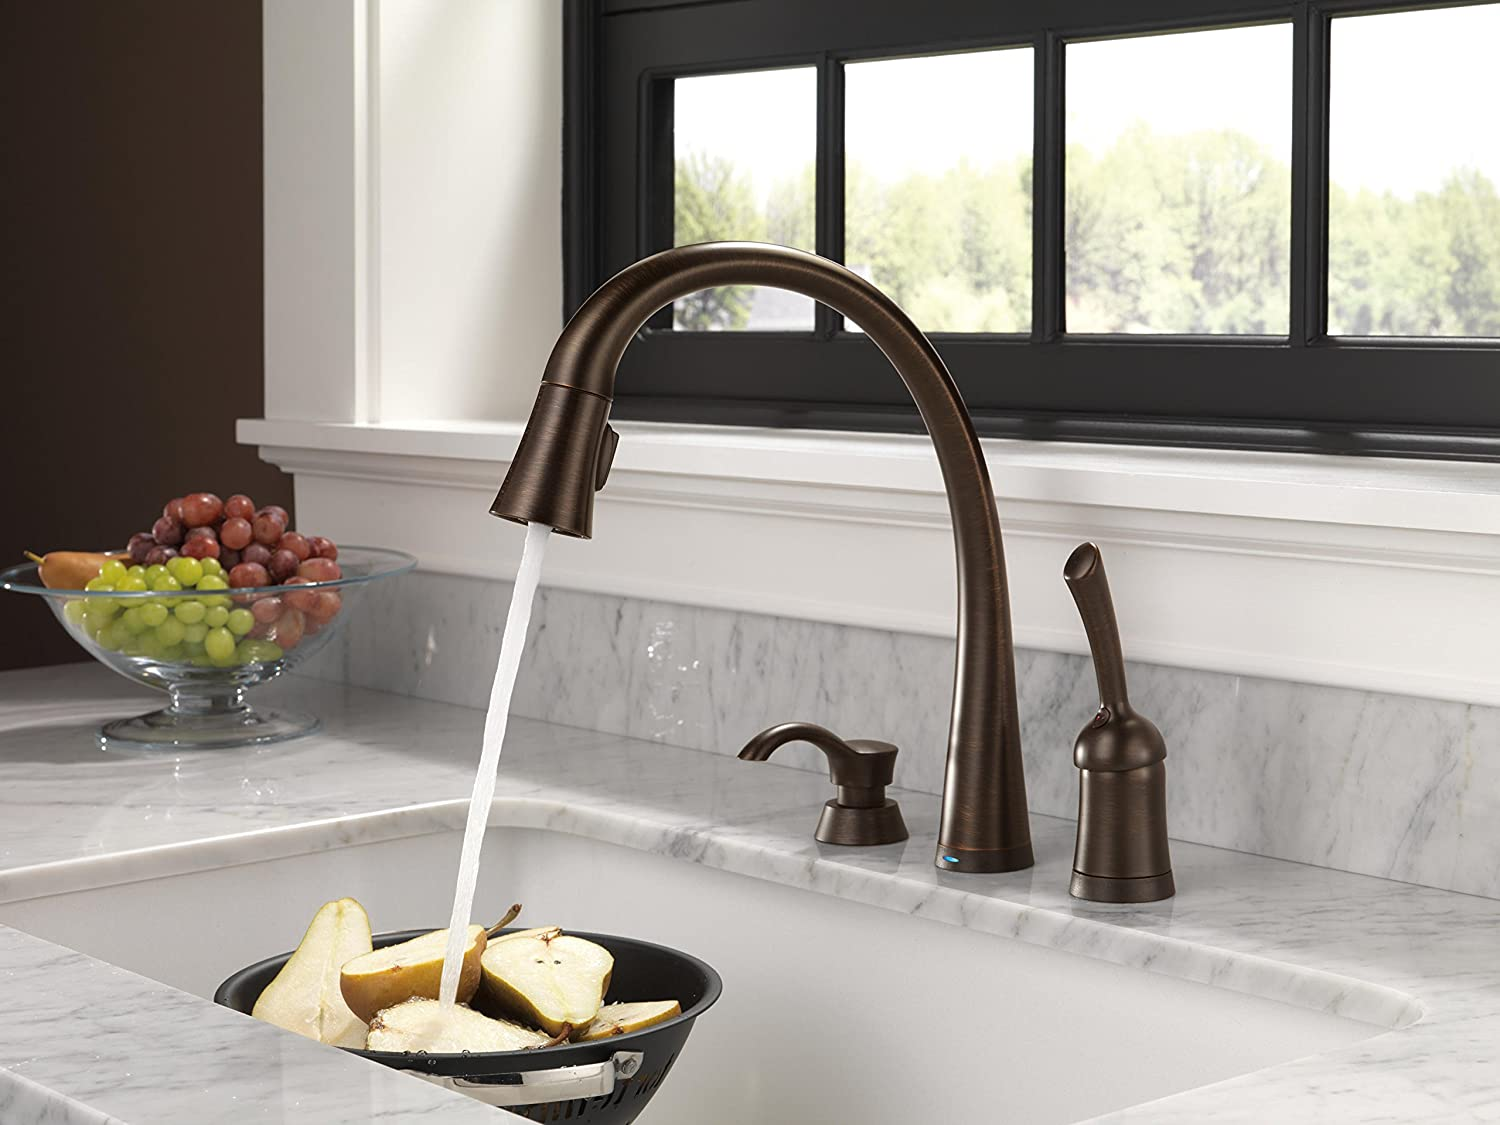 Delta TRBSDDST Pilar Single Handle PullDown Kitchen Faucet - Amazon com delta faucet kitchen sink faucets kitchen faucets